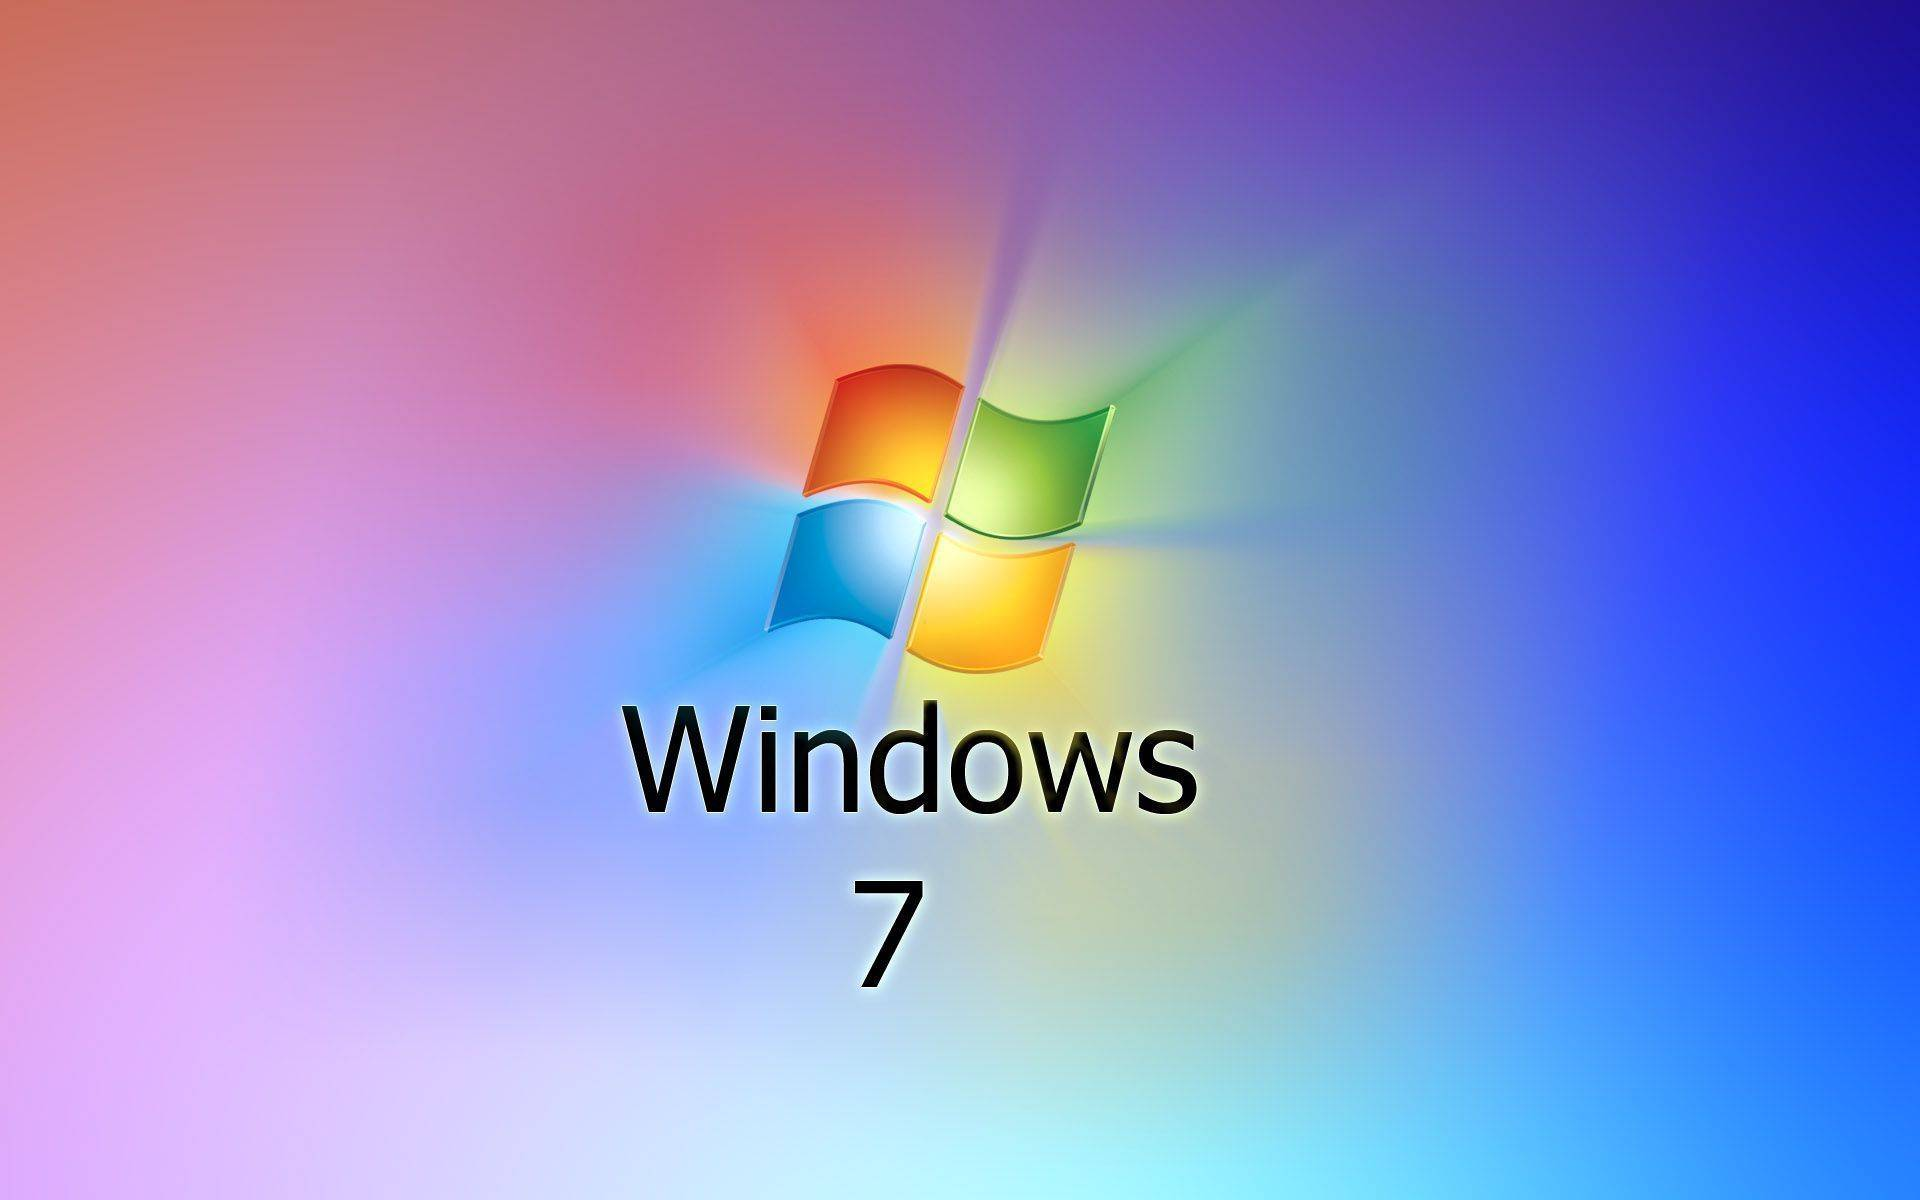 HD Animated Wallpapers For Windows 7 Free Download